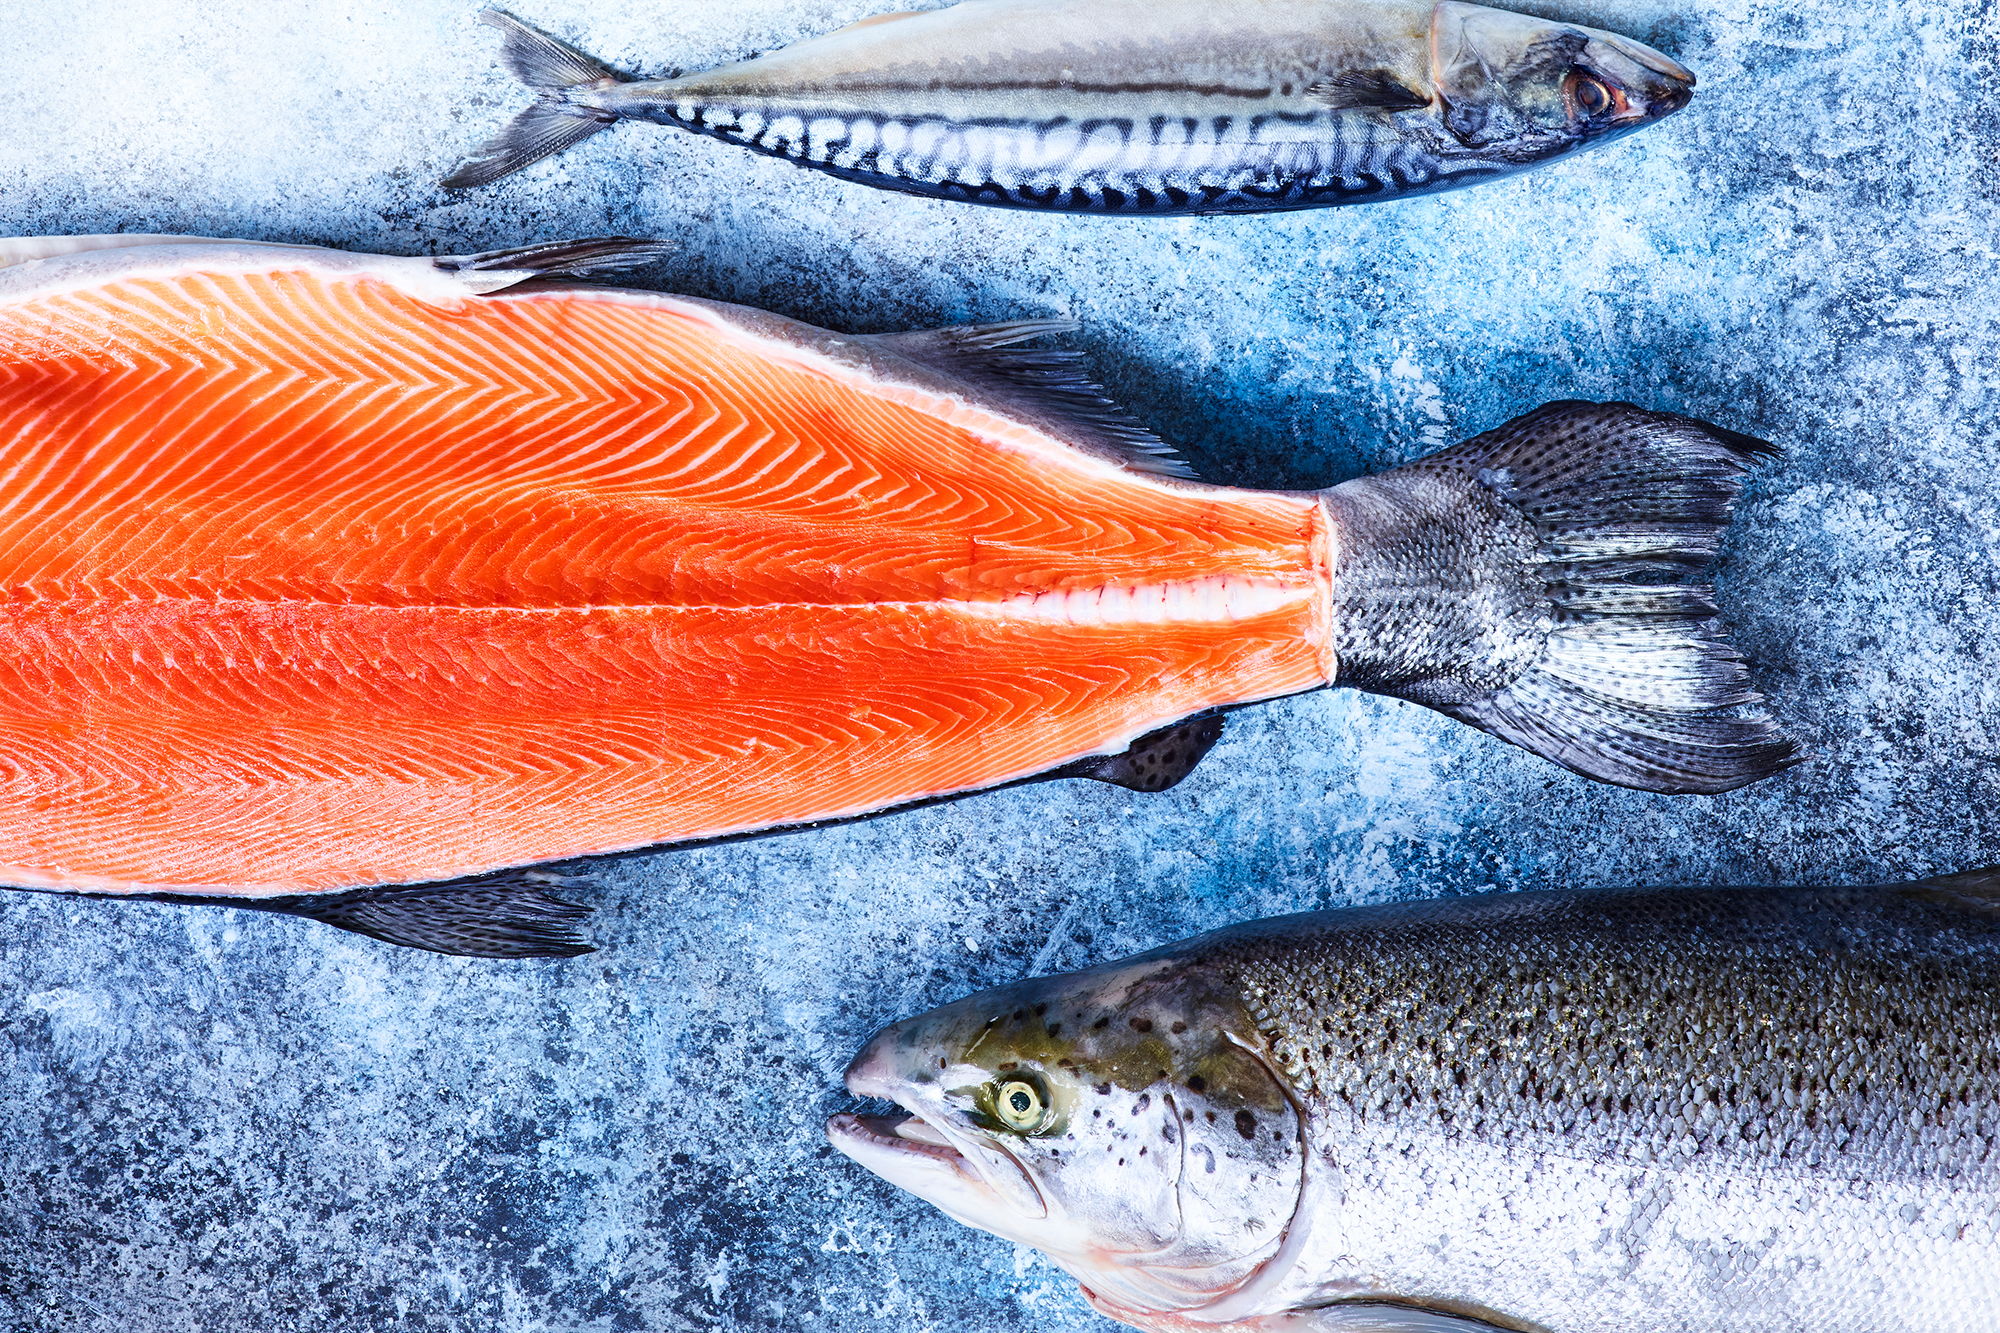 3 different types of raw fish on a textured blue and white background